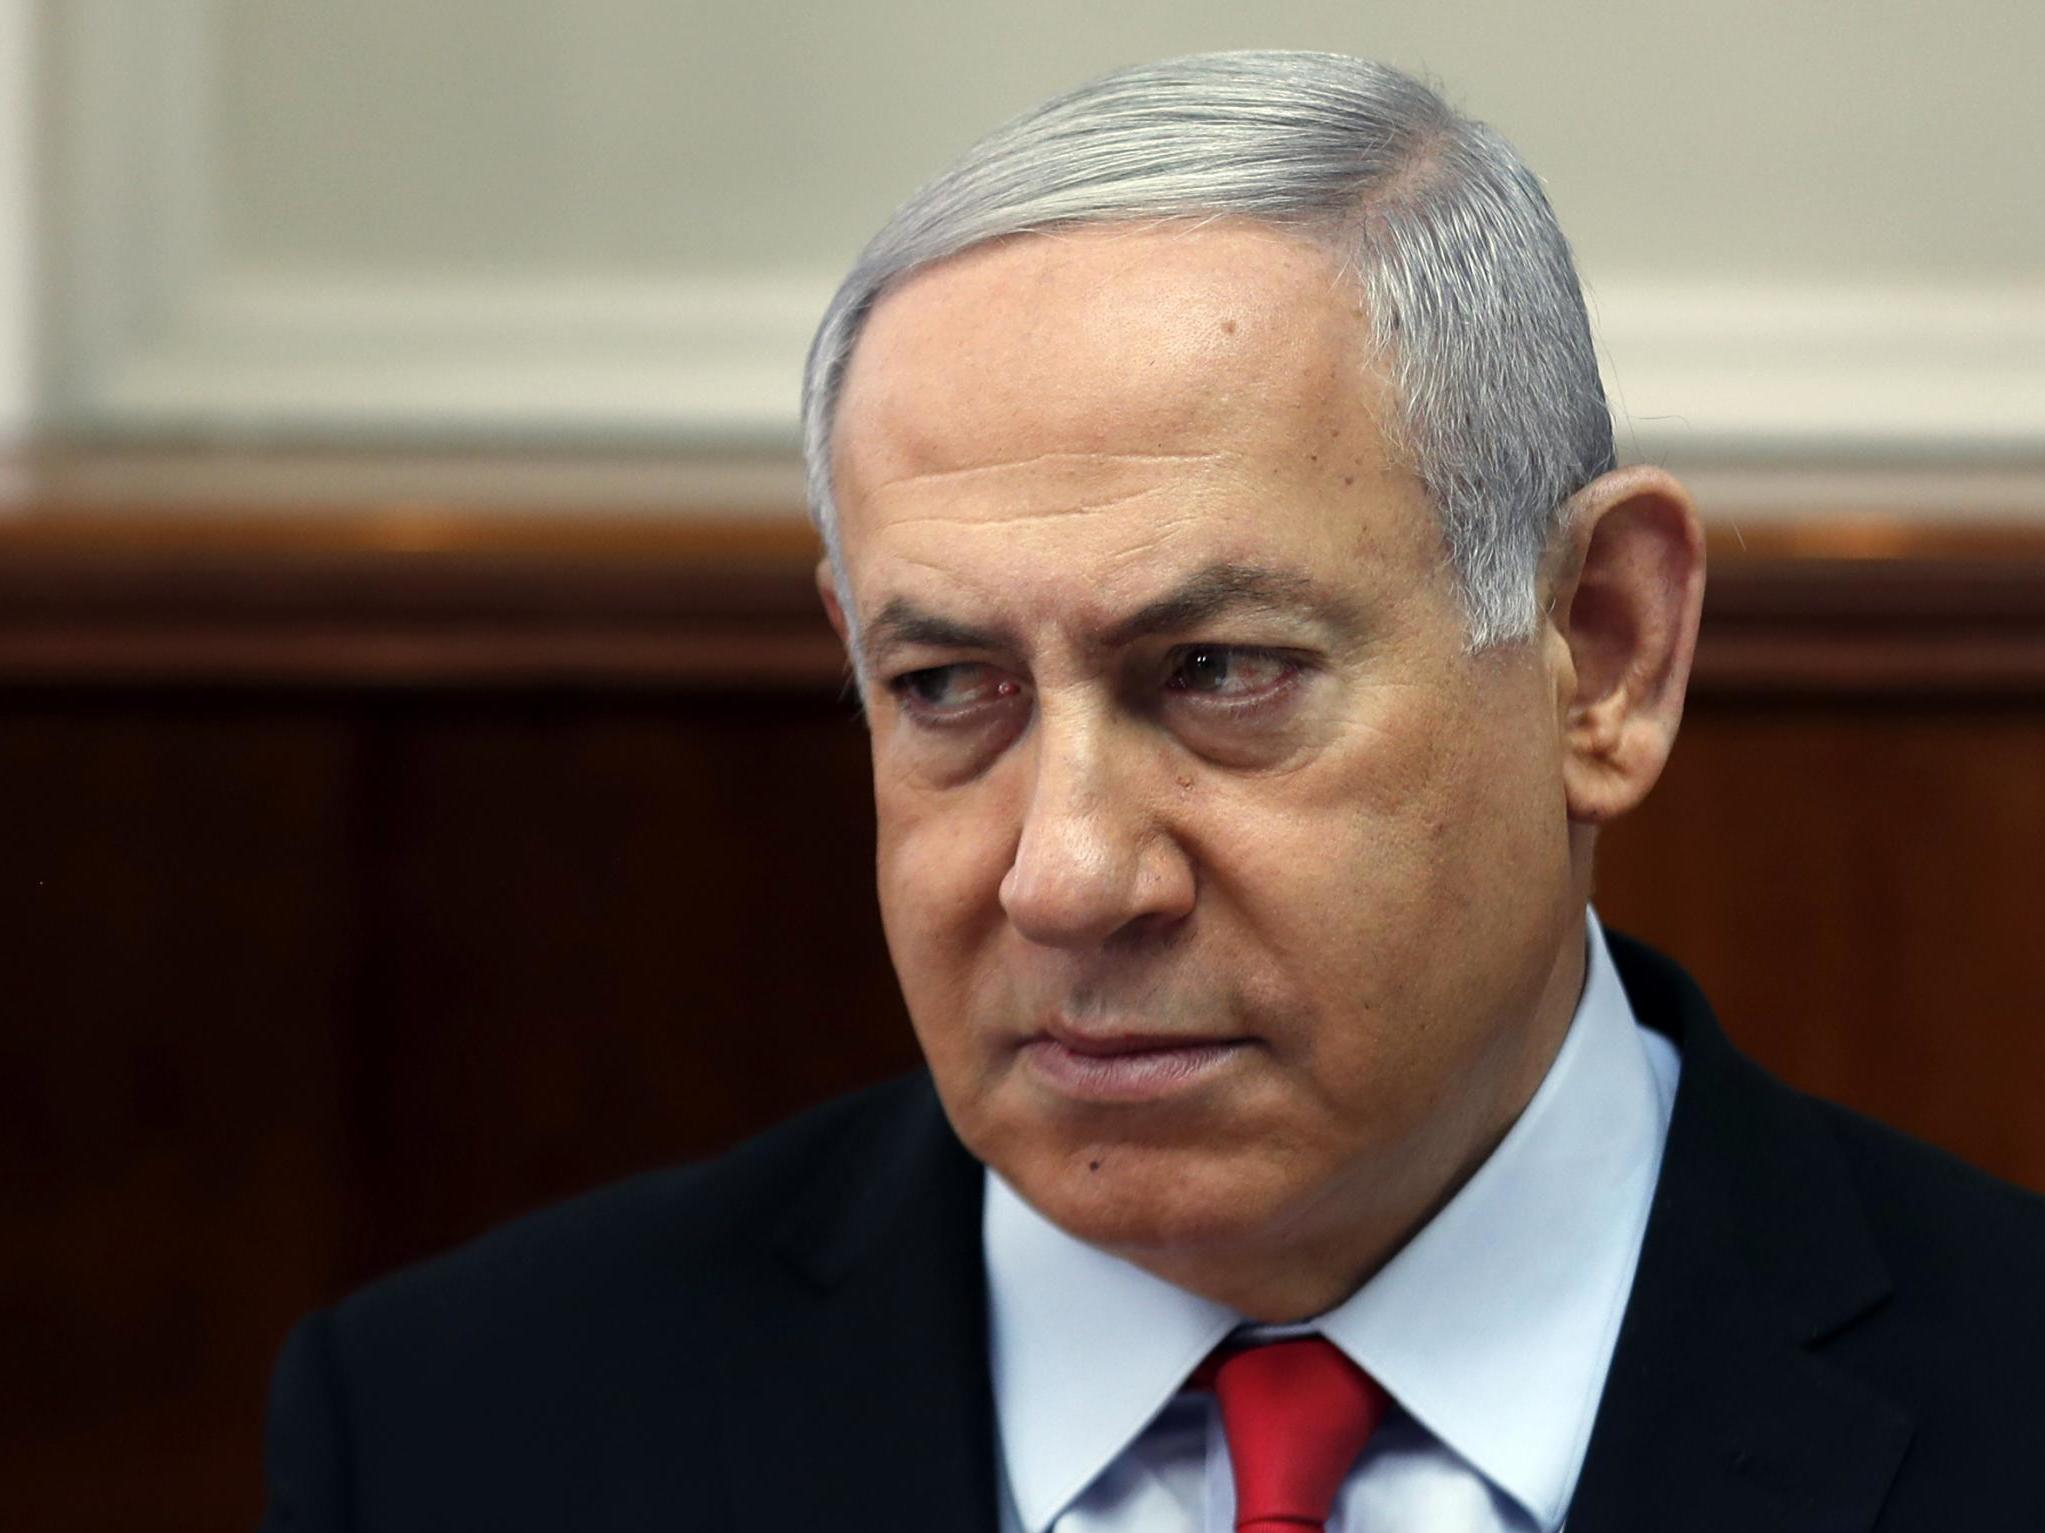 Netanyahu's gamble with Gaza may save his political career but spark a complex drawn-out conflict